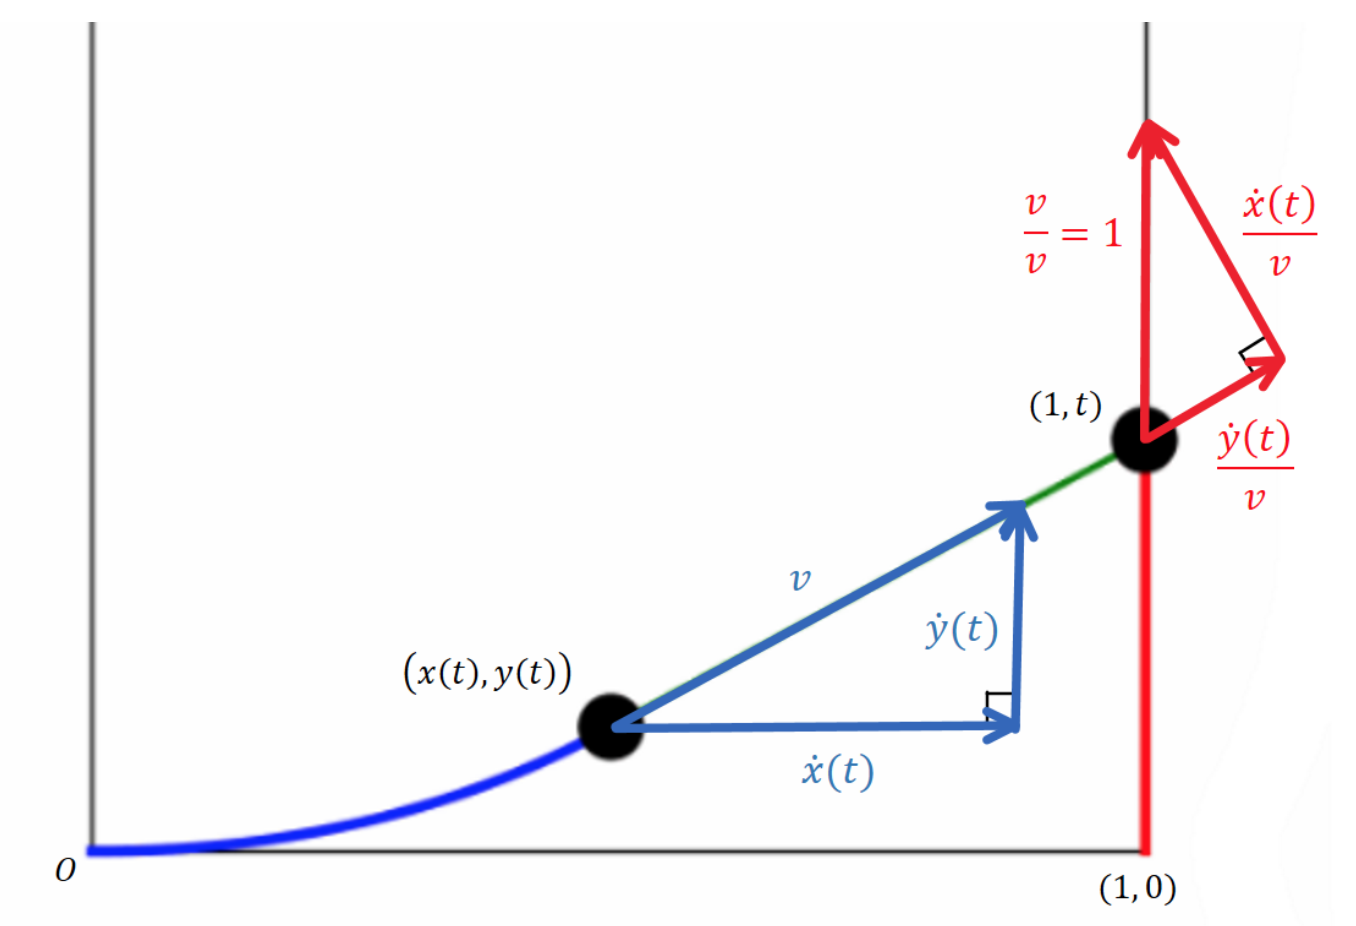 Graph showing Jarrison moving vertically upward from the point (1, 0), while you pursue him, starting at the point (0, 0). You are currently at (x(t), y(t)). Your speed toward Jarrison is v, and the velocity has horizontal and vertical components x_dot(t) and y_dot(y).  Meanwhile, Jarrison's current position is (1, t). His velocity is upward with speed 1, which is broken down into components of y_dot(t)/v away from you and x_dot(t)/v in the perpendicular direction.